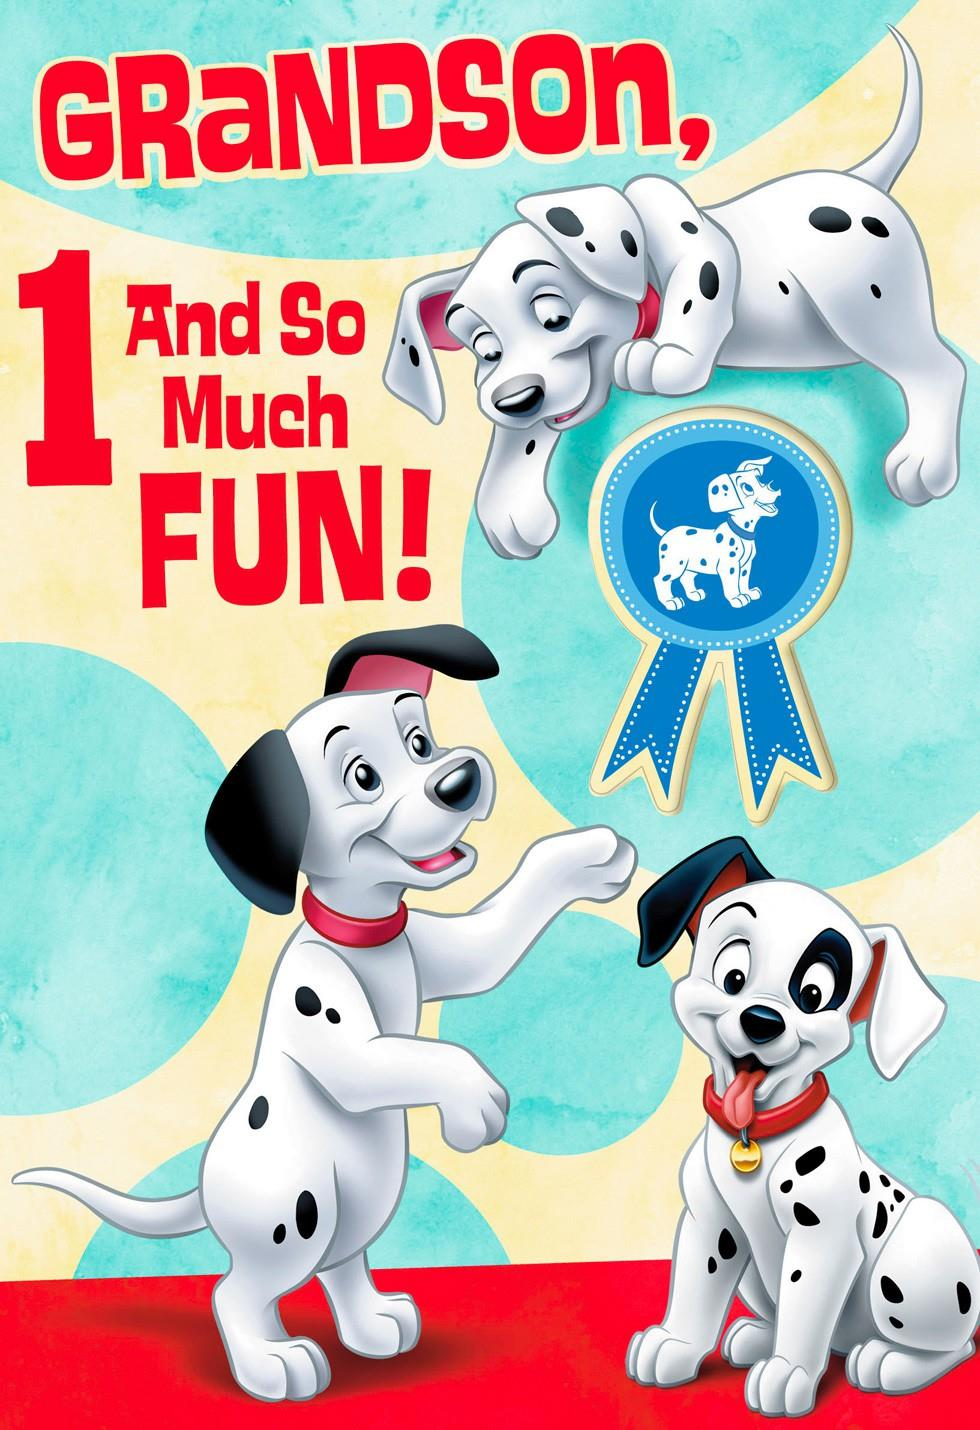 101 Dalmatians 1st Birthday Card For Grandson